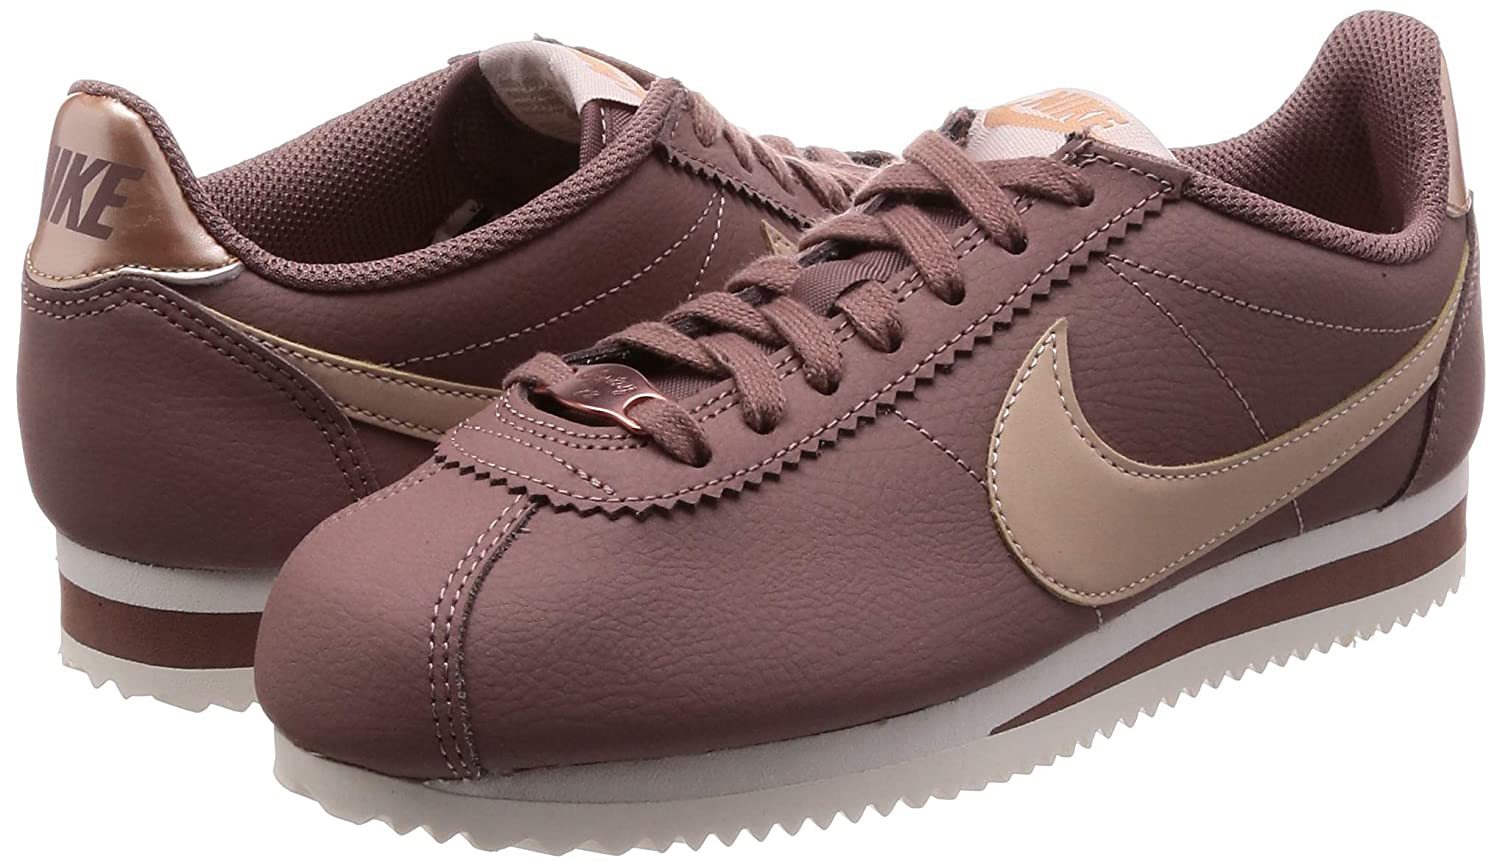 Nike Nike Nike Damen WMNS Classic Cortez Leather Fitnessschuhe fc07dc